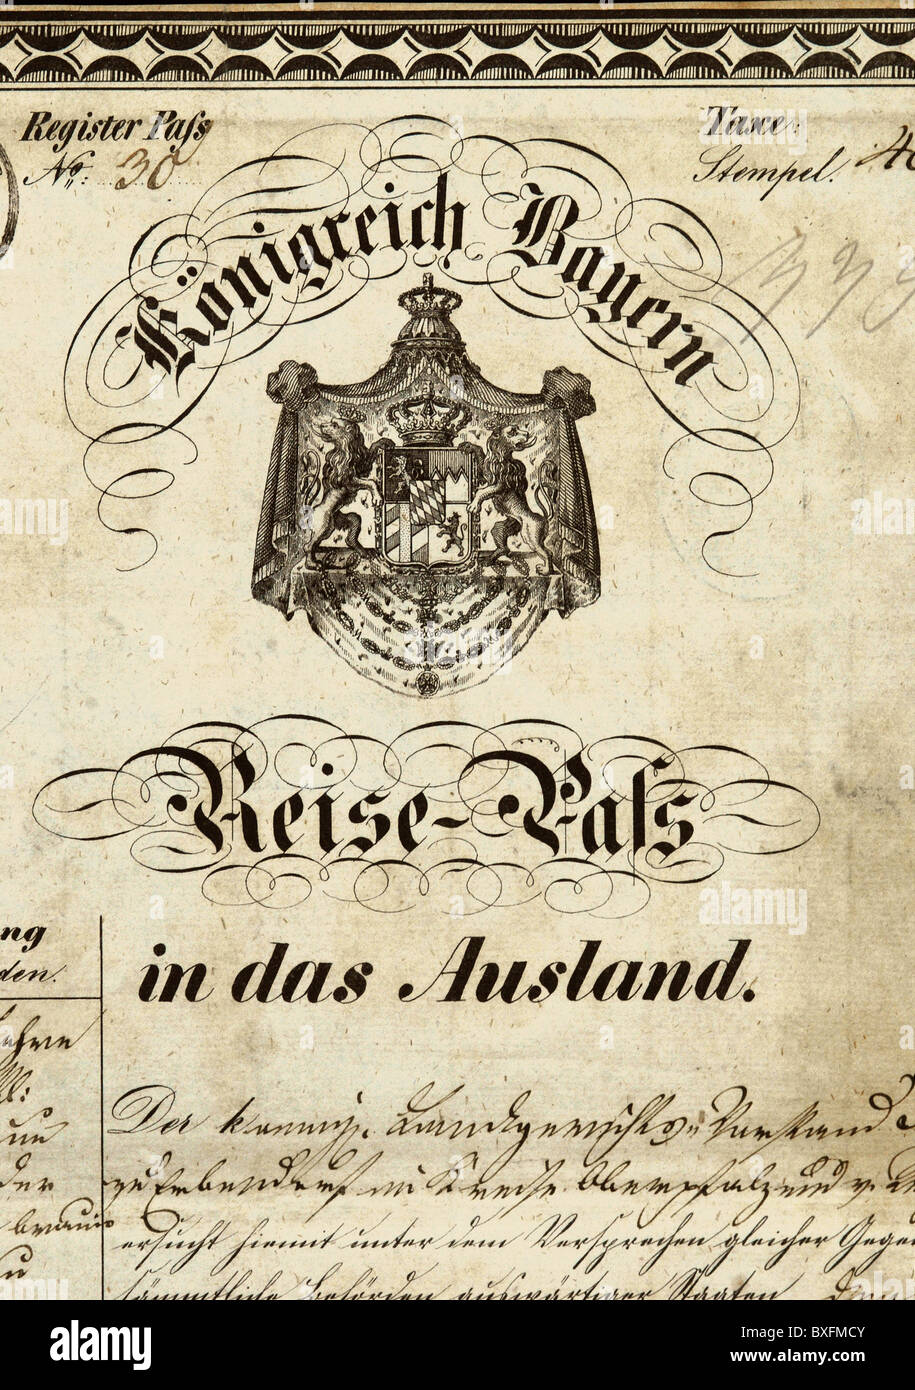 documents, passport, Kingdom of Bavaria, Erbendorf, 30.7.1855, Additional-Rights-Clearences-NA Stock Photo